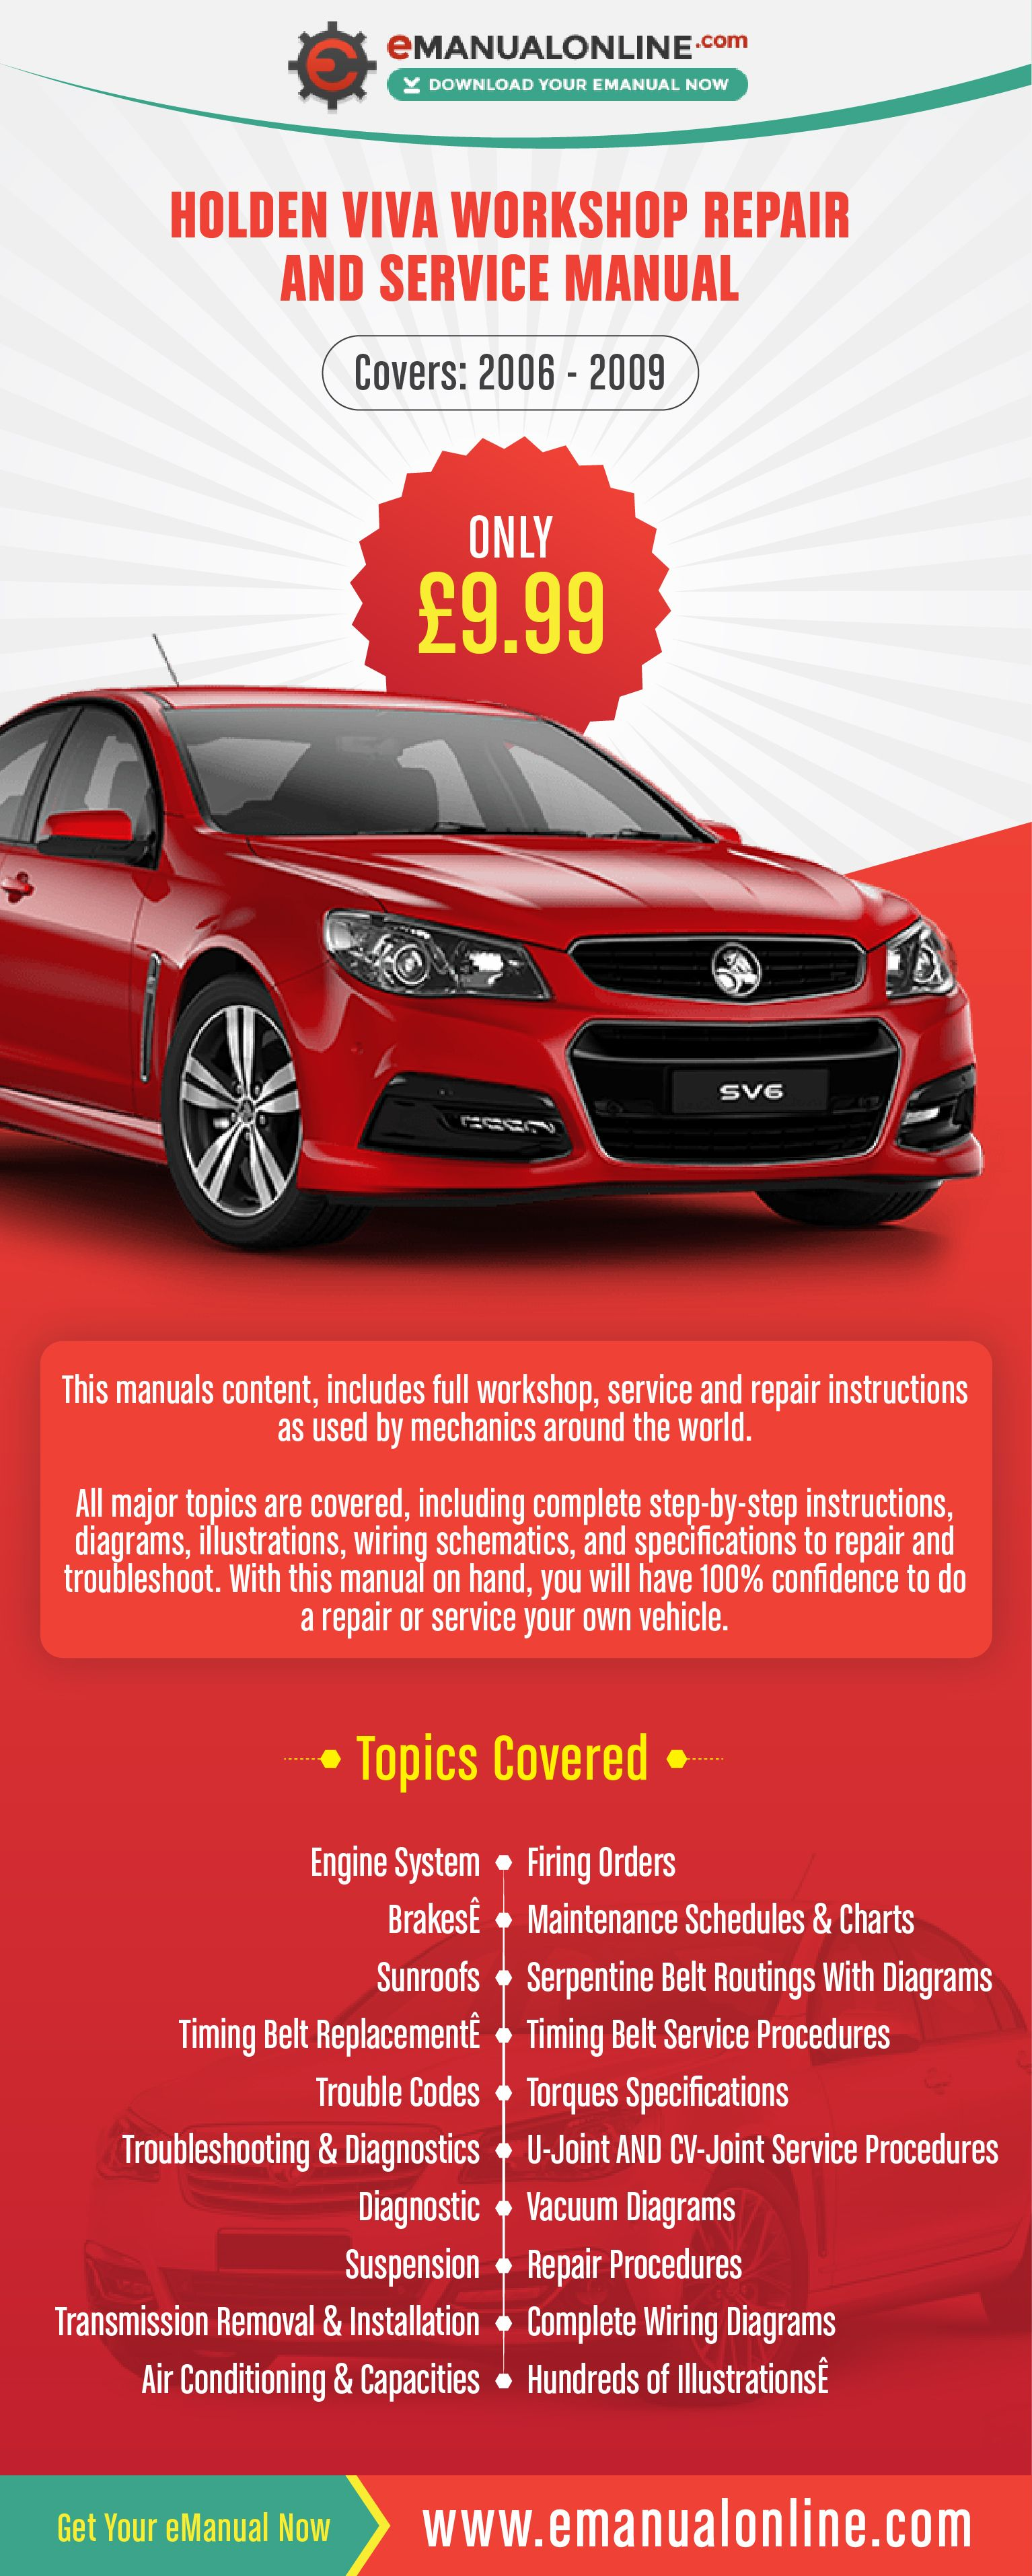 medium resolution of holden viva workshop repair and service manual this manuals content includes full workshop service and repair instructions as used by mechanics around the